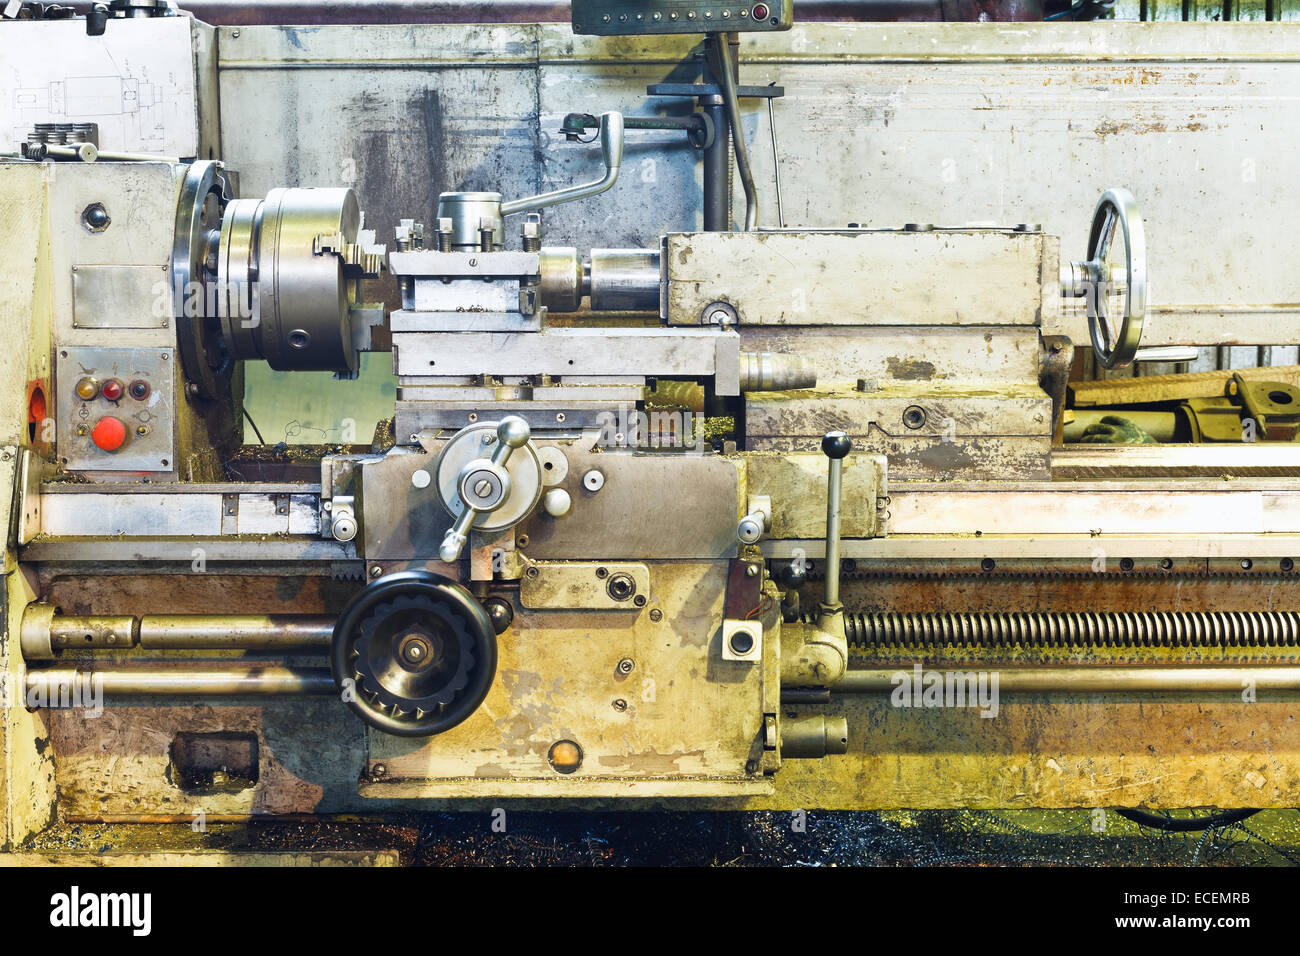 Grind engine stock photos grind engine stock images alamy for Motor machine shop near me